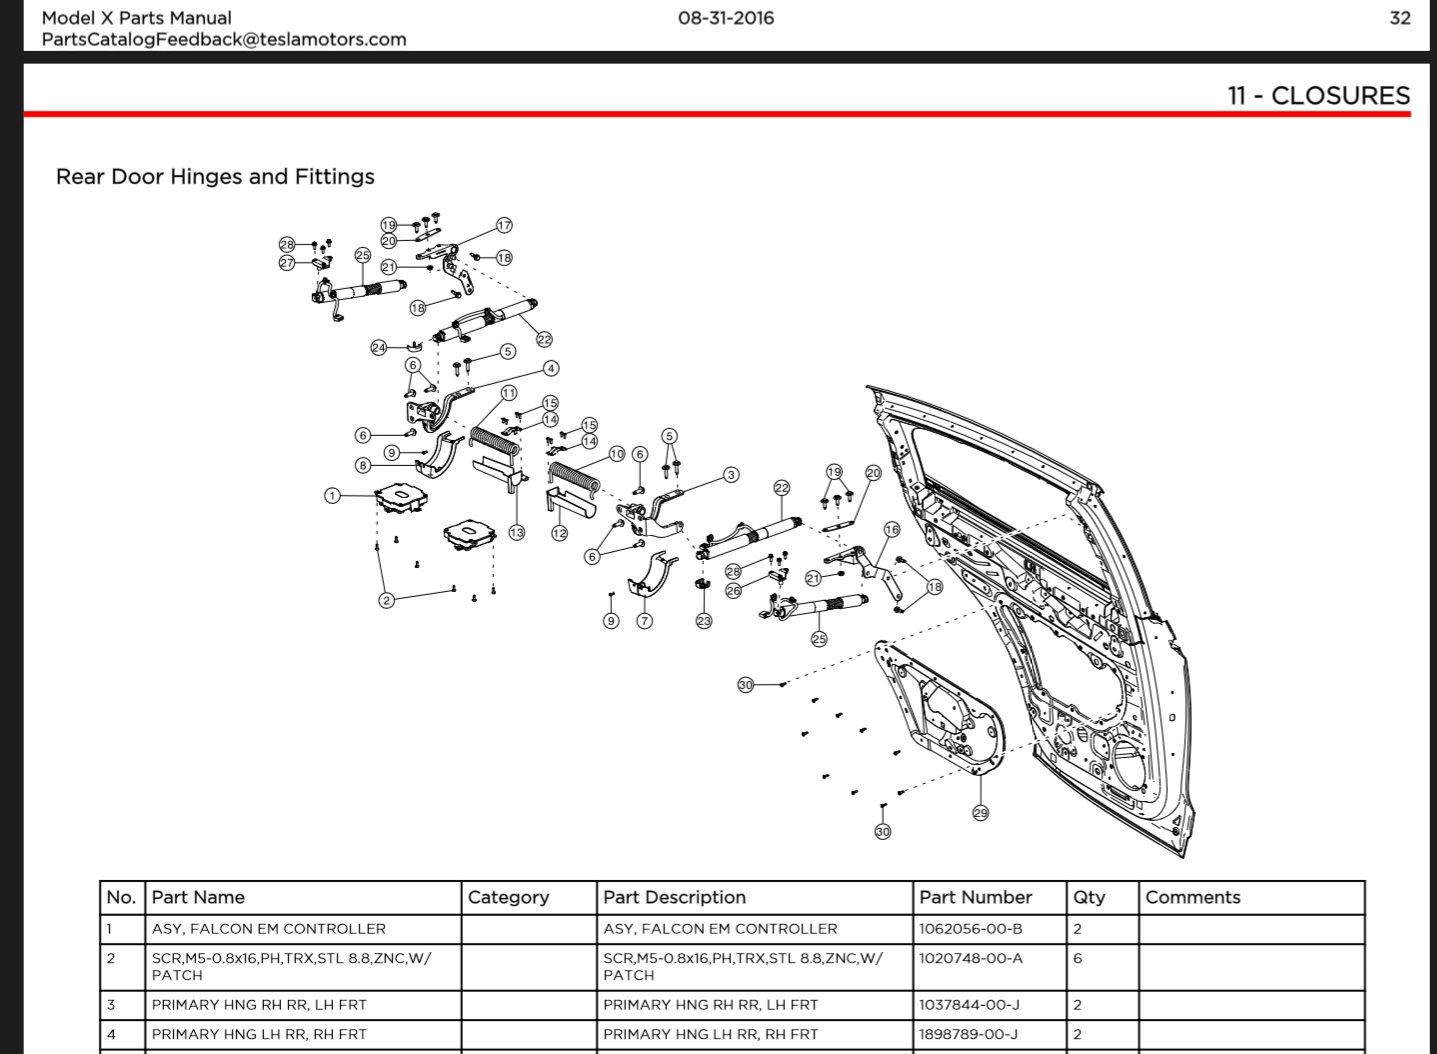 tesla model x service manual wiring diagram parts catalog please ask for price and payment details in pm private message only